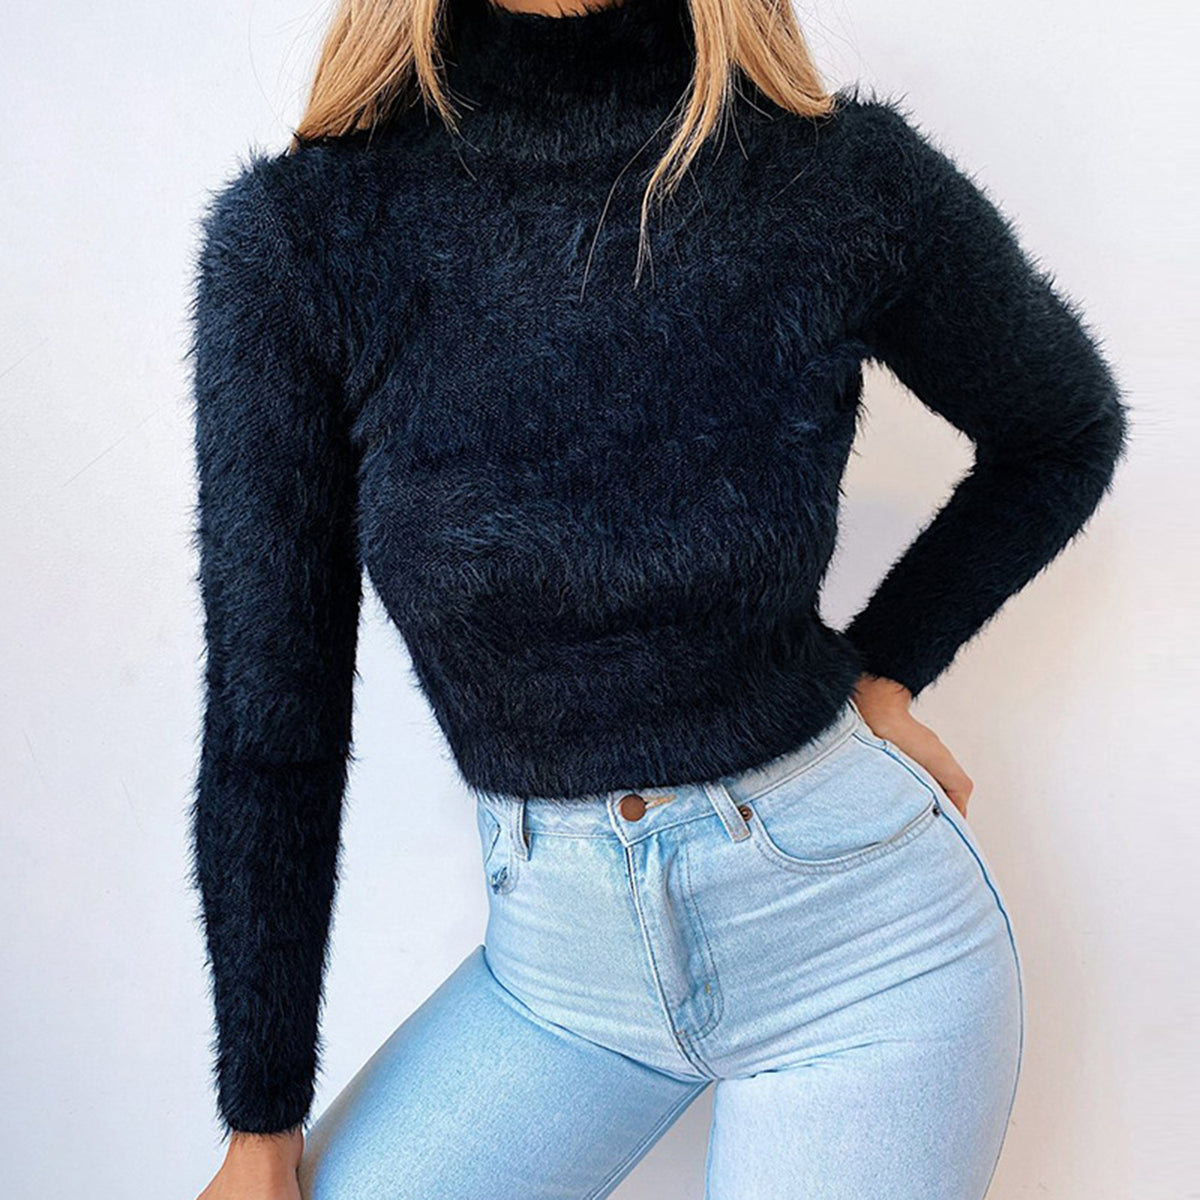 Turtle Neck Fuzzy Crop Knit Sweater